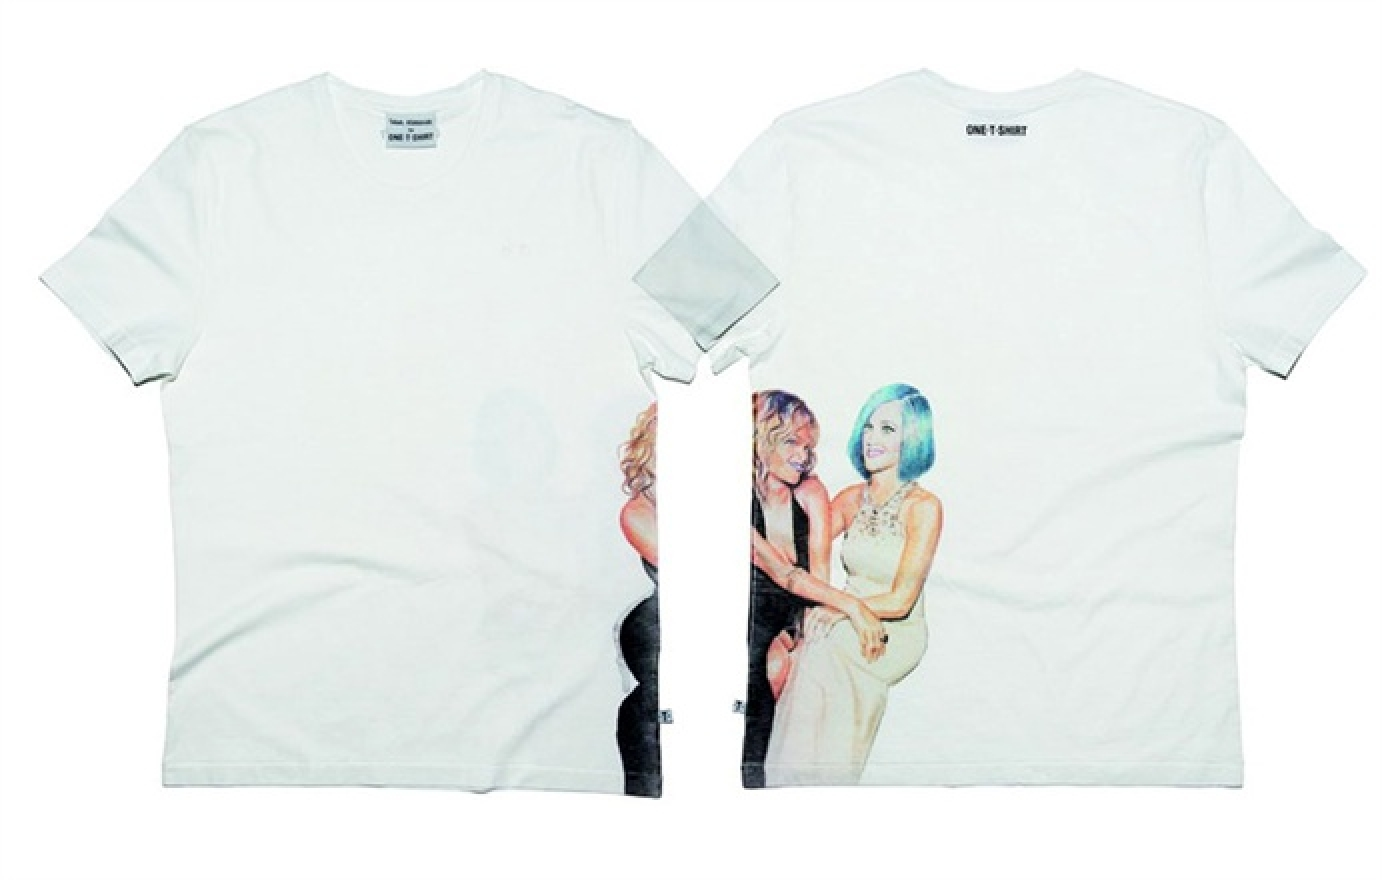 Rihanna e Katy Perry - OneTShirt by Tobias Rehberger